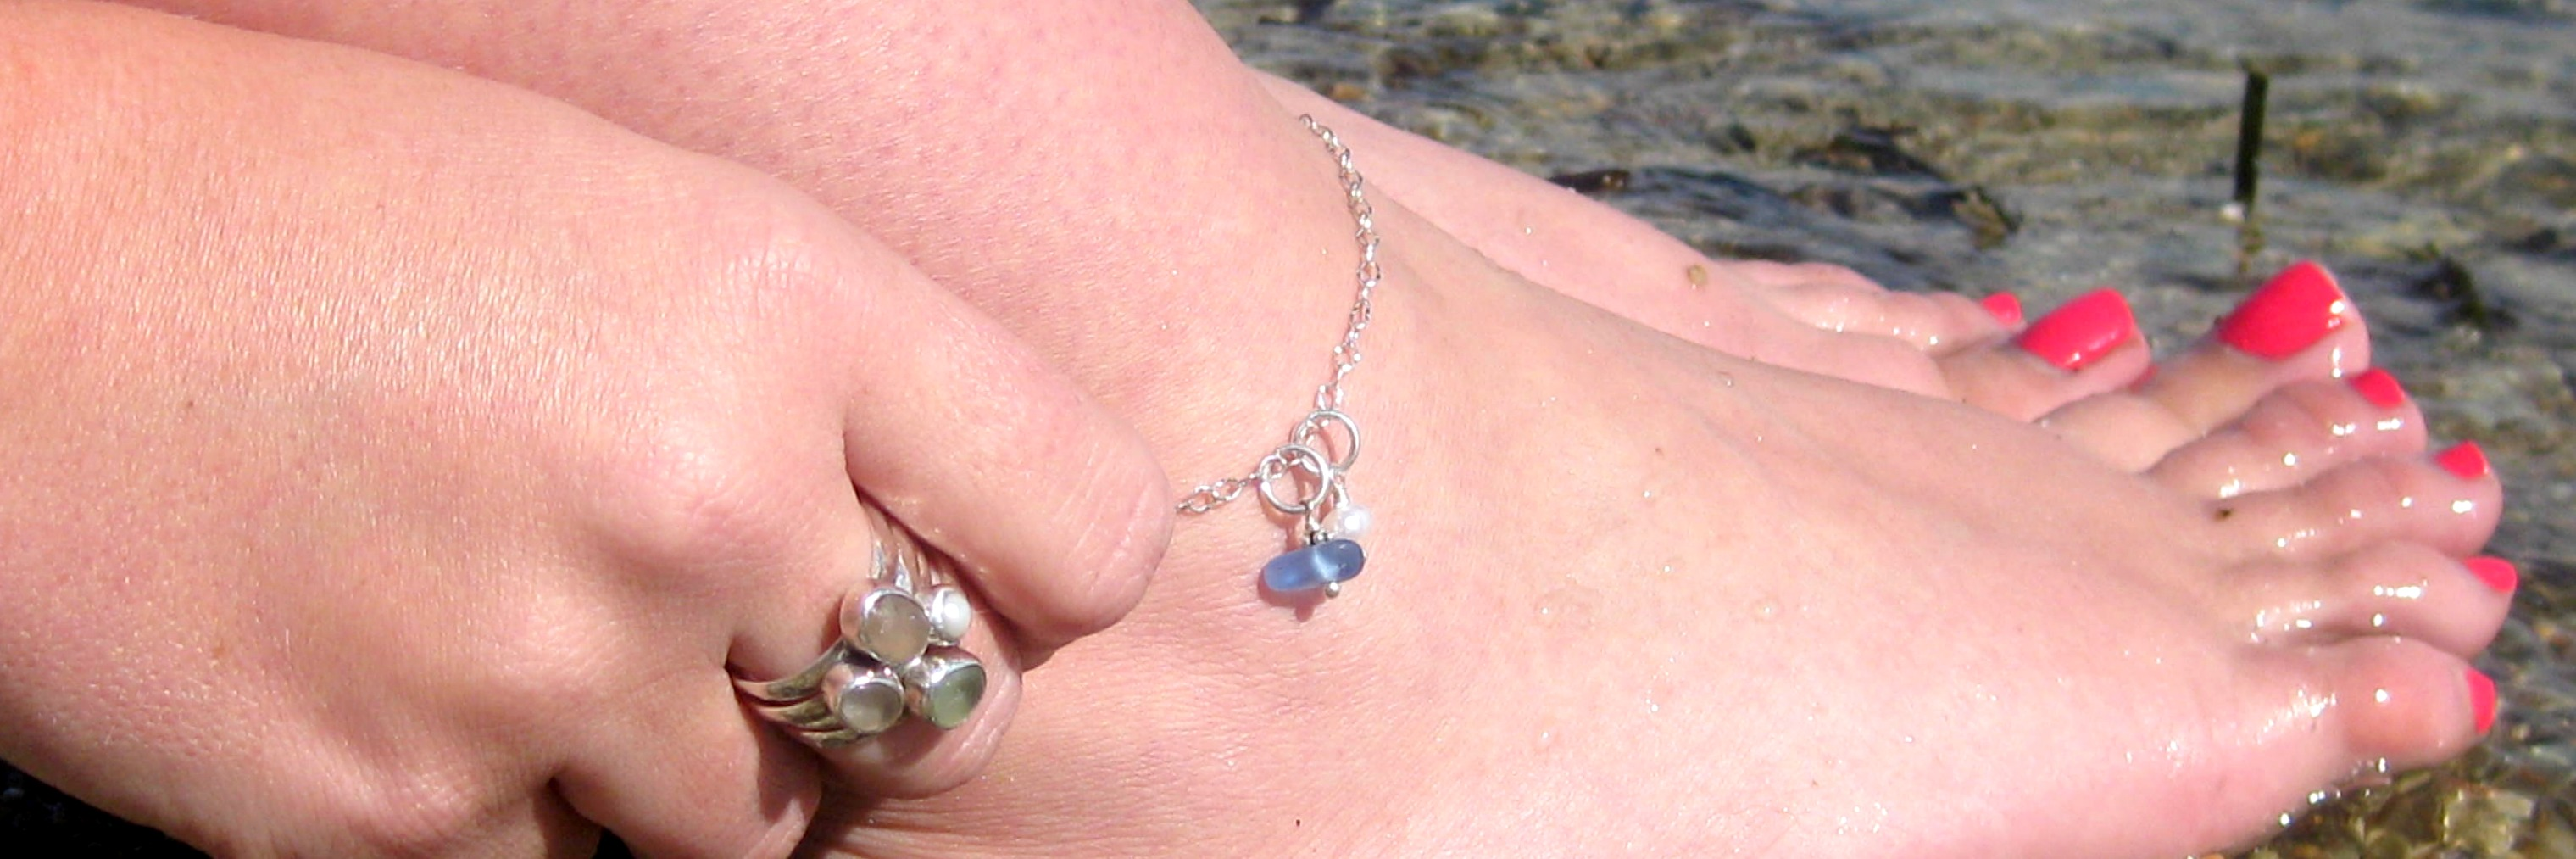 artisan feminine images and flattering pinterest sterling anklets glass sea by on anklet silver driftinjewelry best